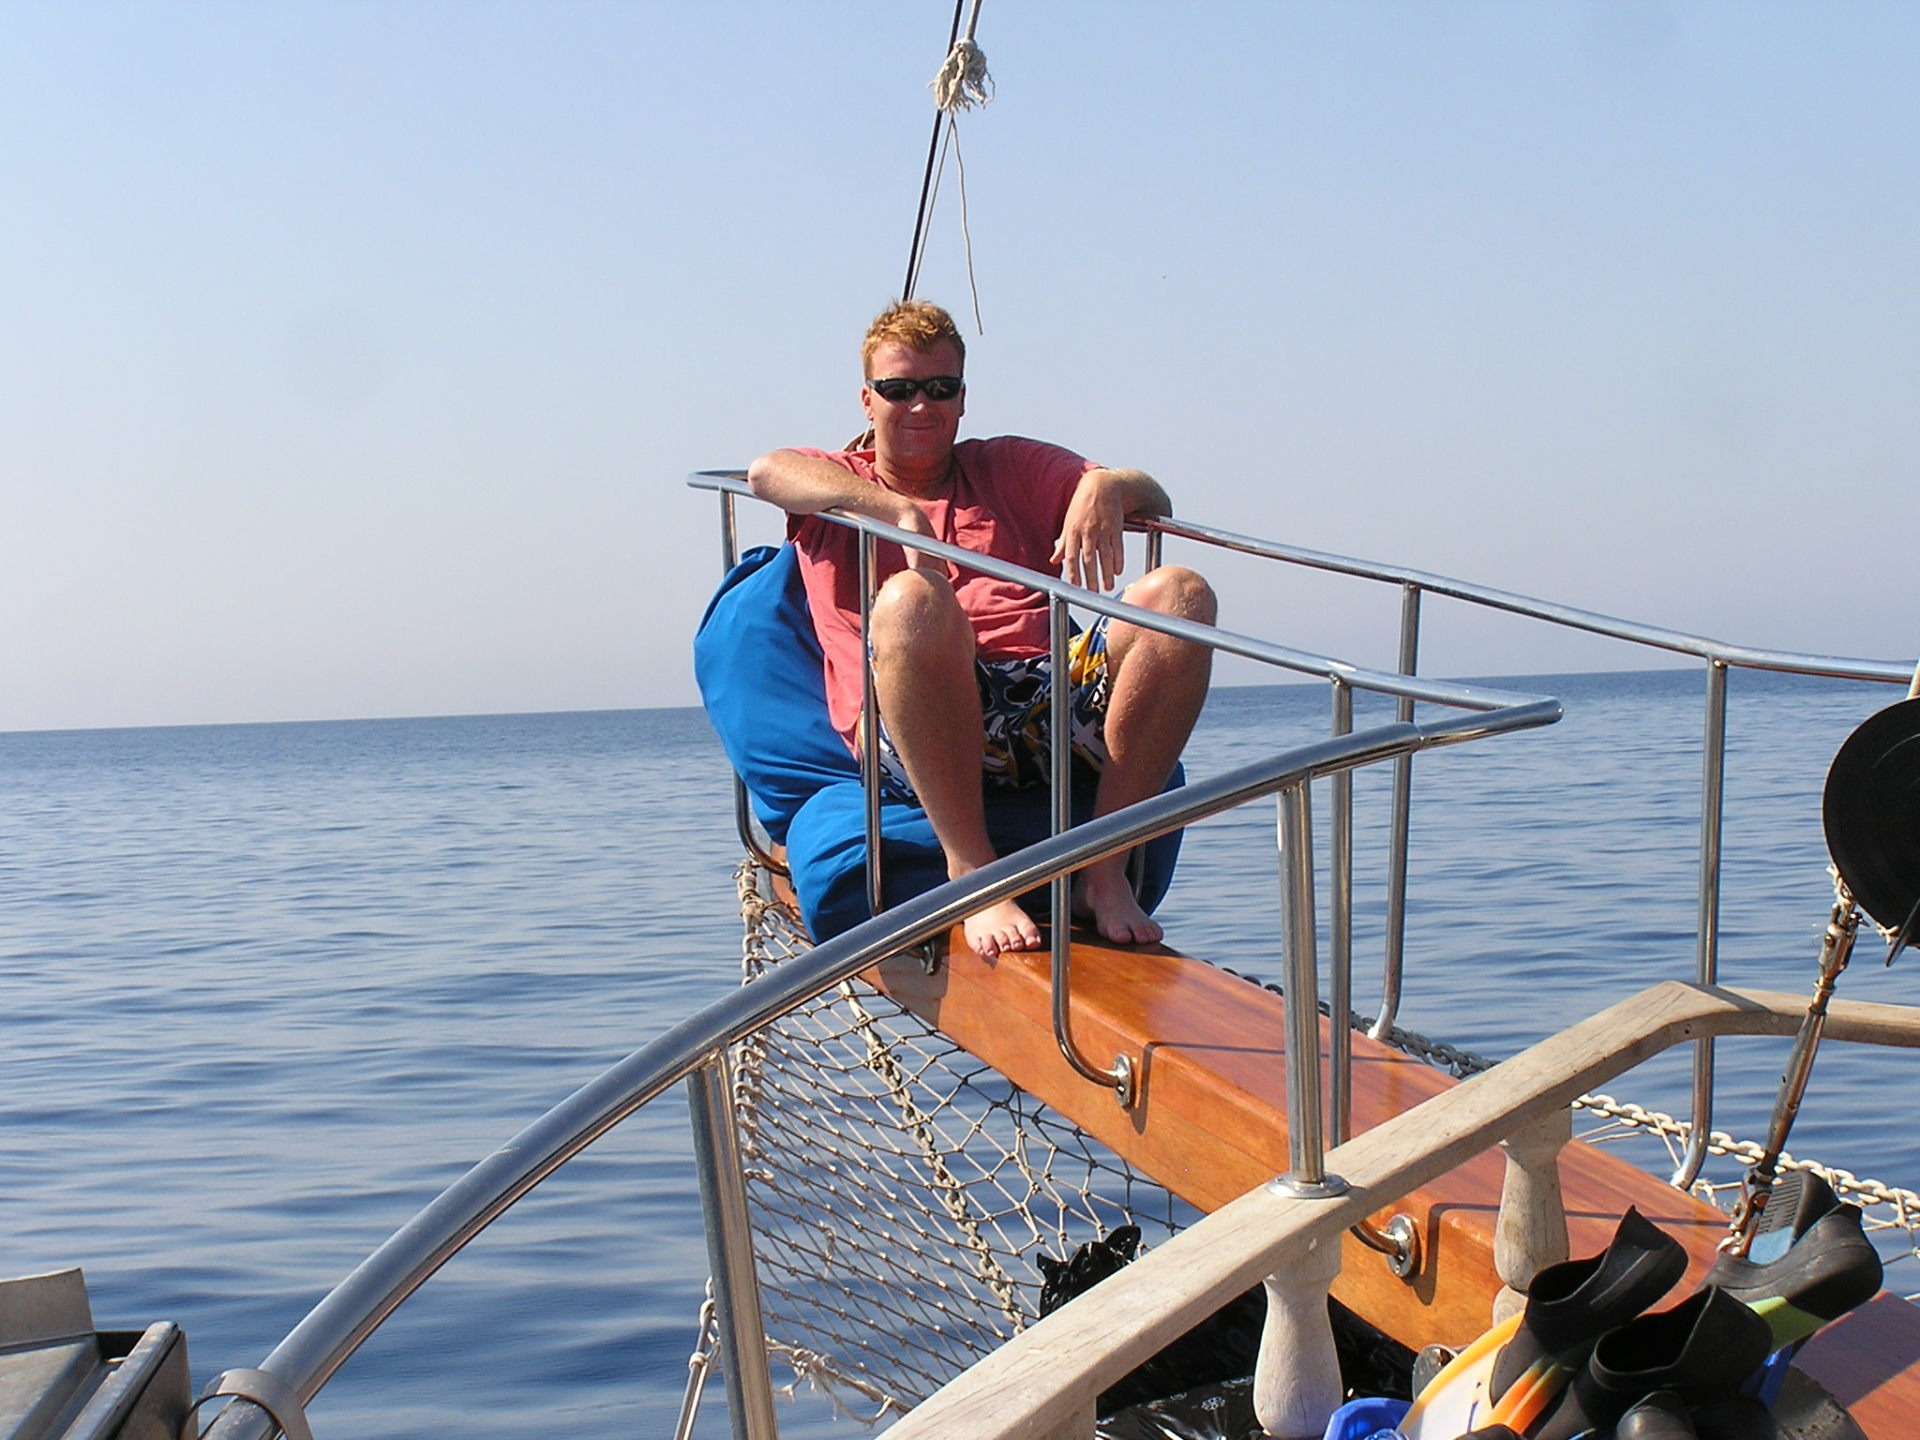 Dustin enjoyed the perch on the bow of our sailboat. Fetiye, Turkey: chapter 59, You must only to love them. http://mershon.wordpress.com